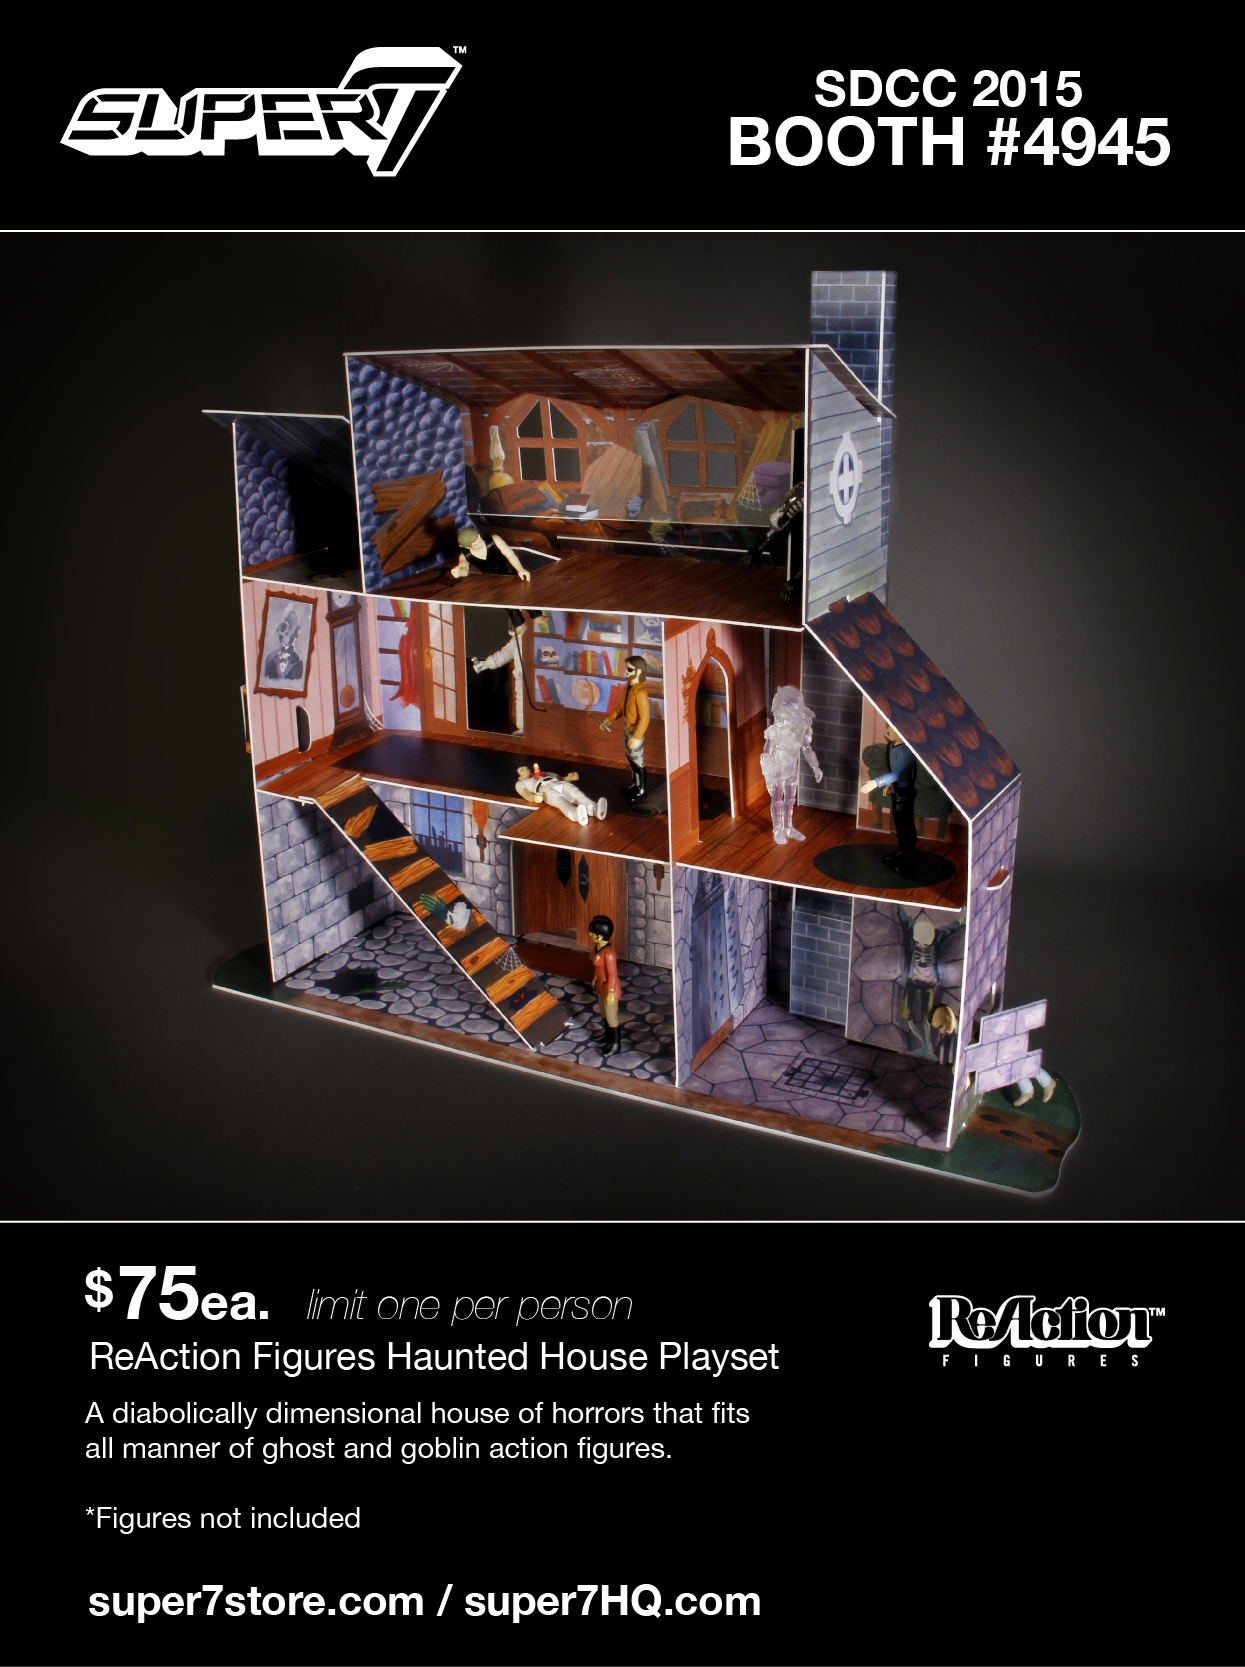 SDCC Exclusive ReAction Figures Haunted House Playset